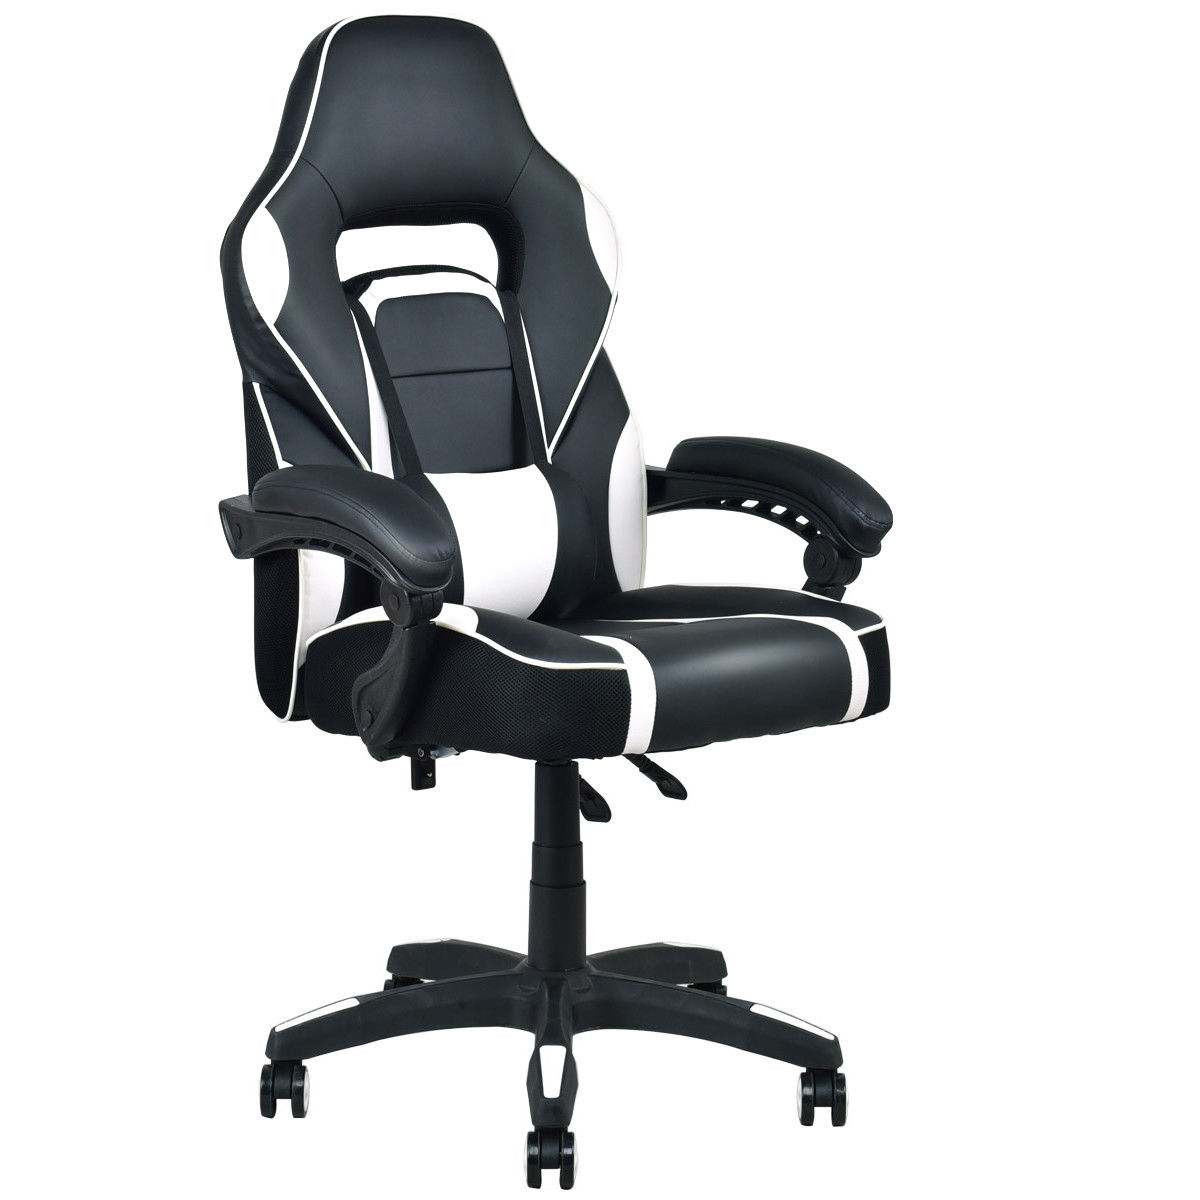 Giantex Modern Executive Racing Style Gaming Chair High - Leather High Back Lounge Chair